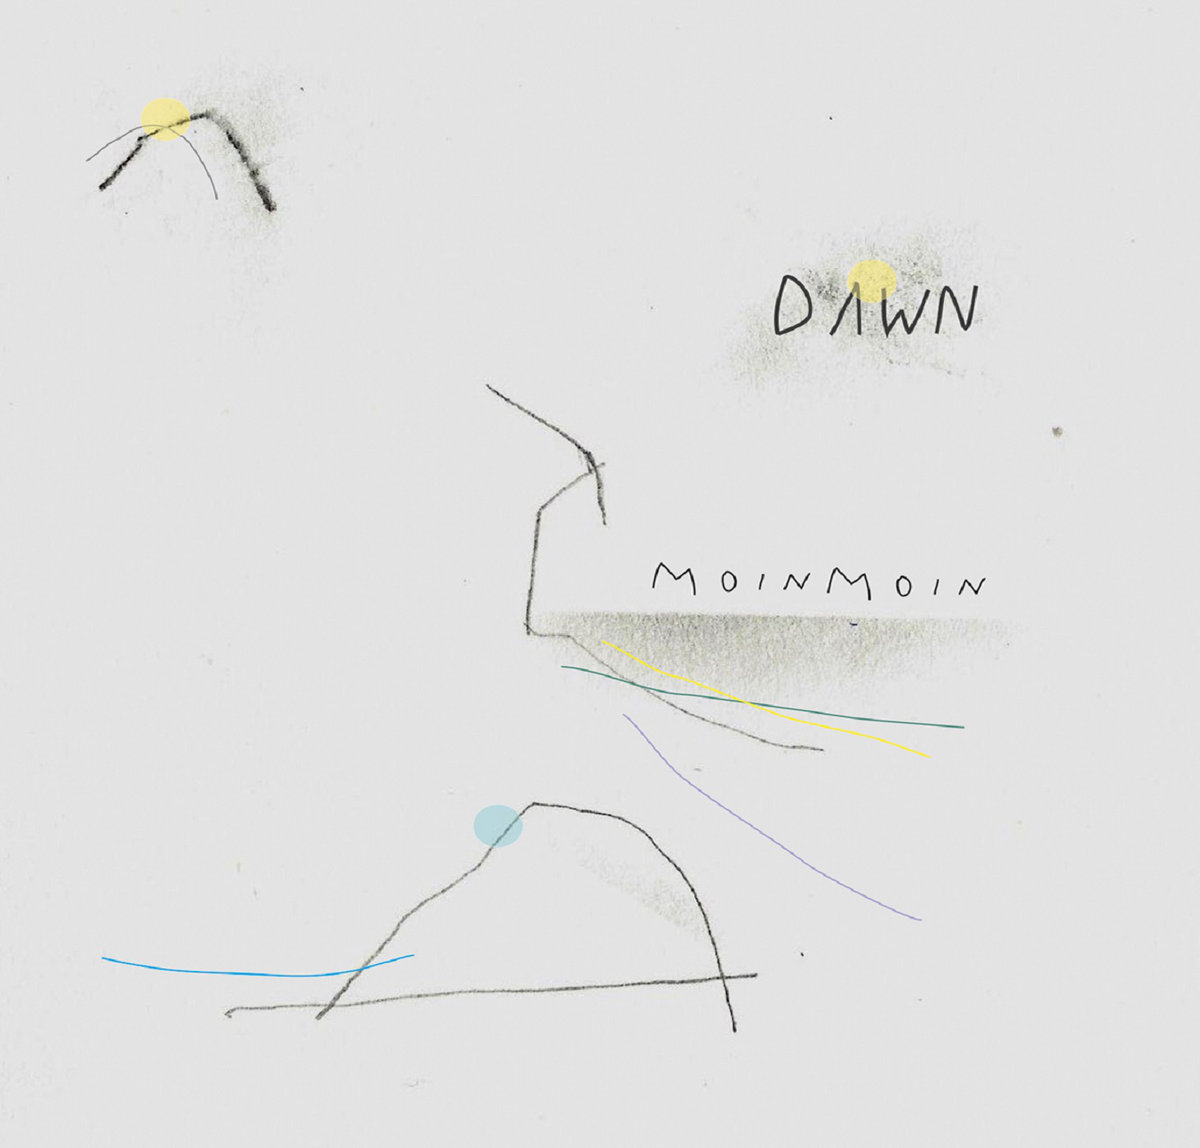 moin moin dawn album art